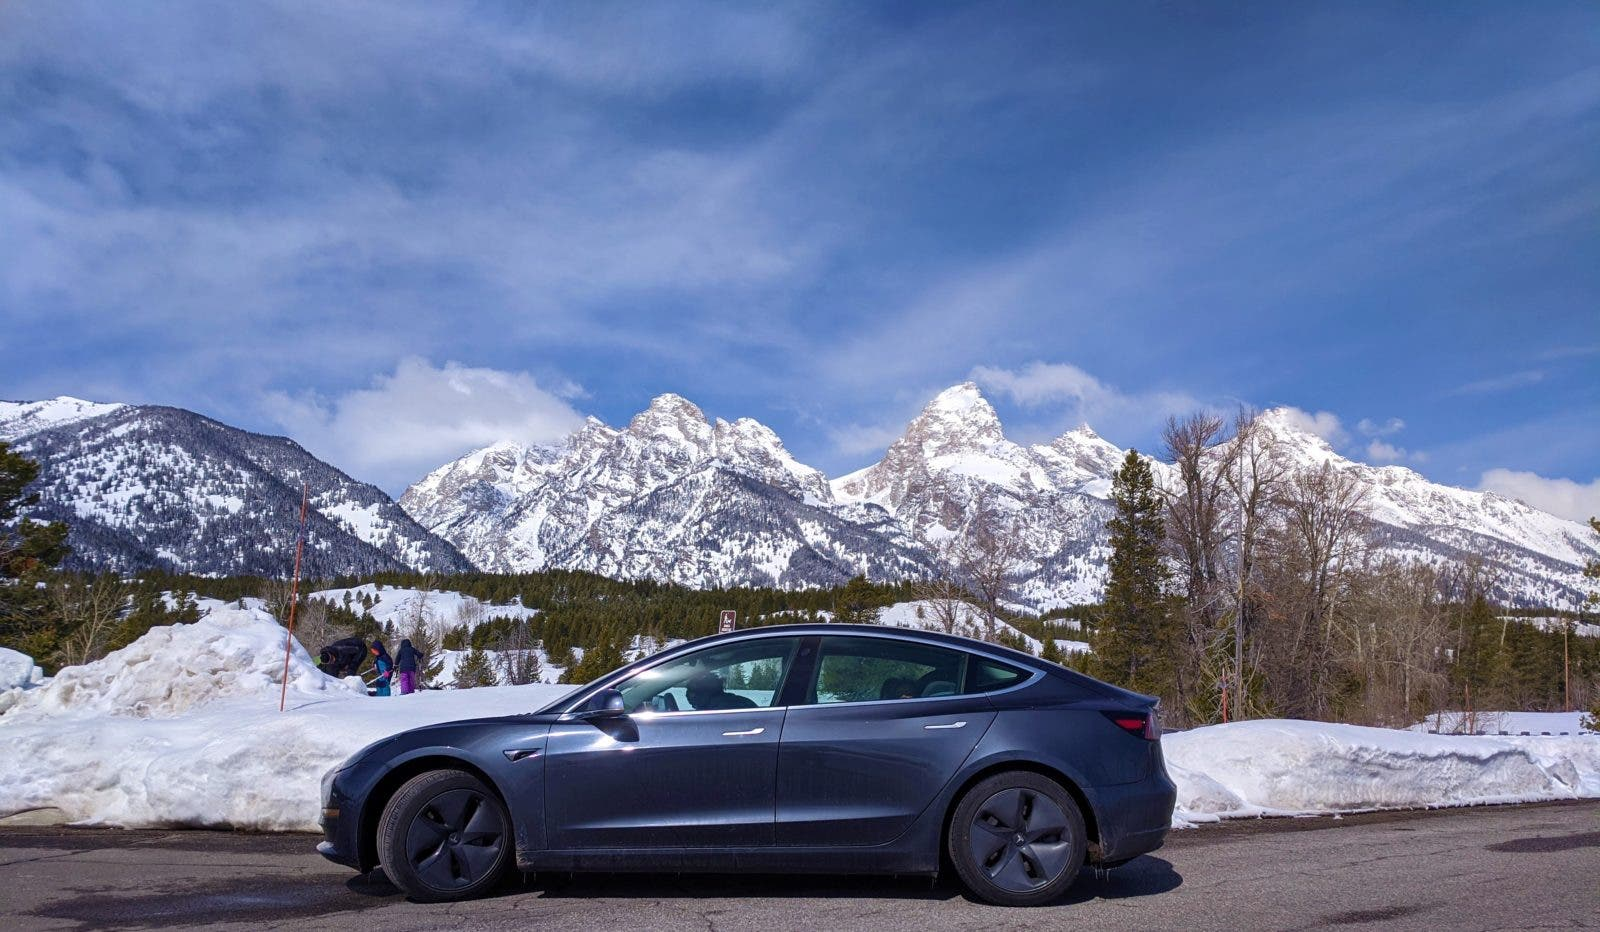 8 Days, 2 Kids, 2700 Miles, 1 Tesla — Lessons Learned From A Cross Country EV Road Trip